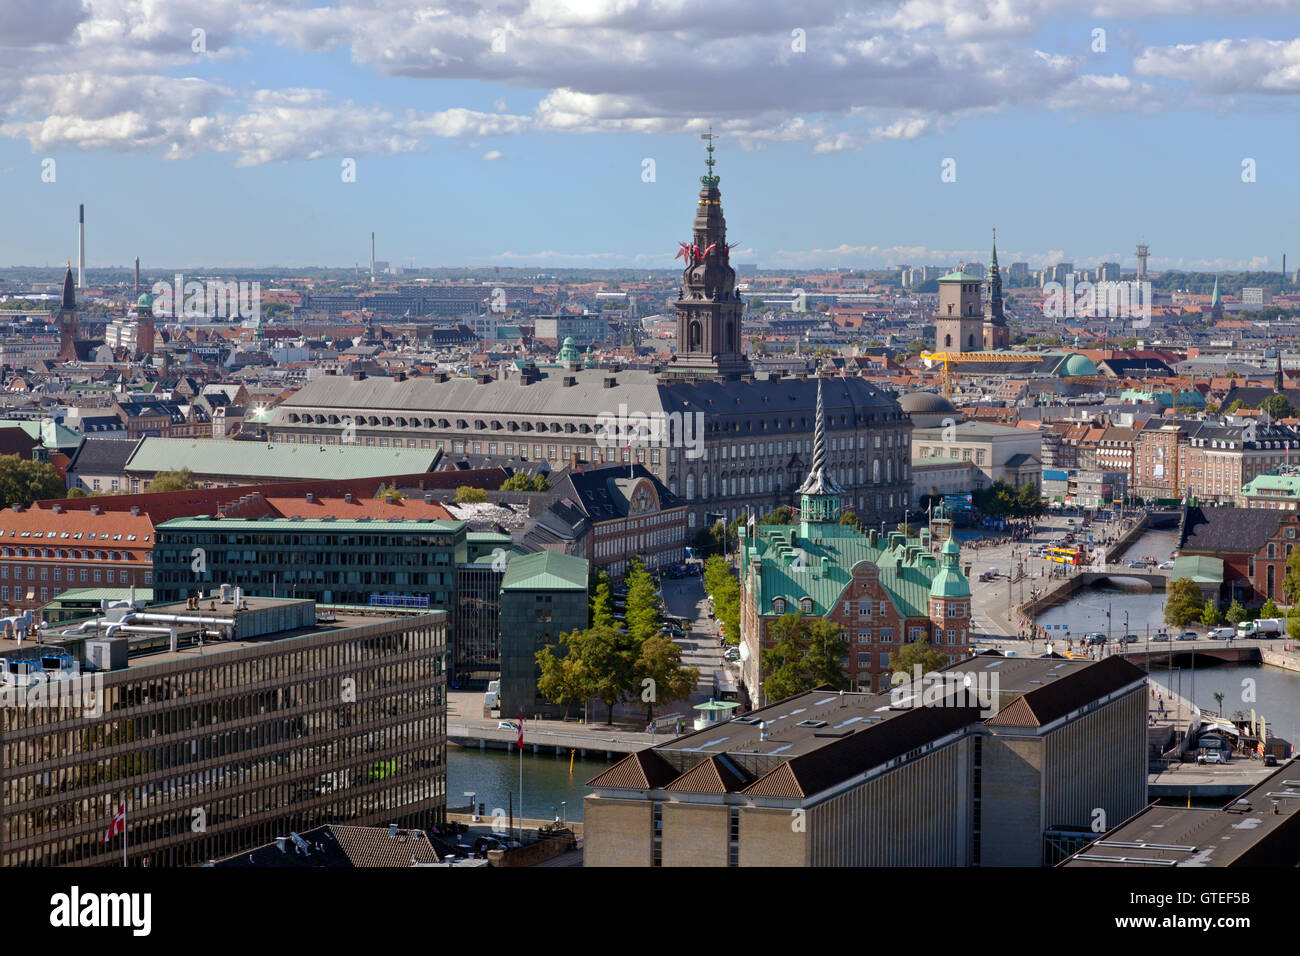 Aerial view of Christiansborg Castle and the Old Stock Exchange and the area around Slotsholmen, the Slotsholm island. - Stock Image